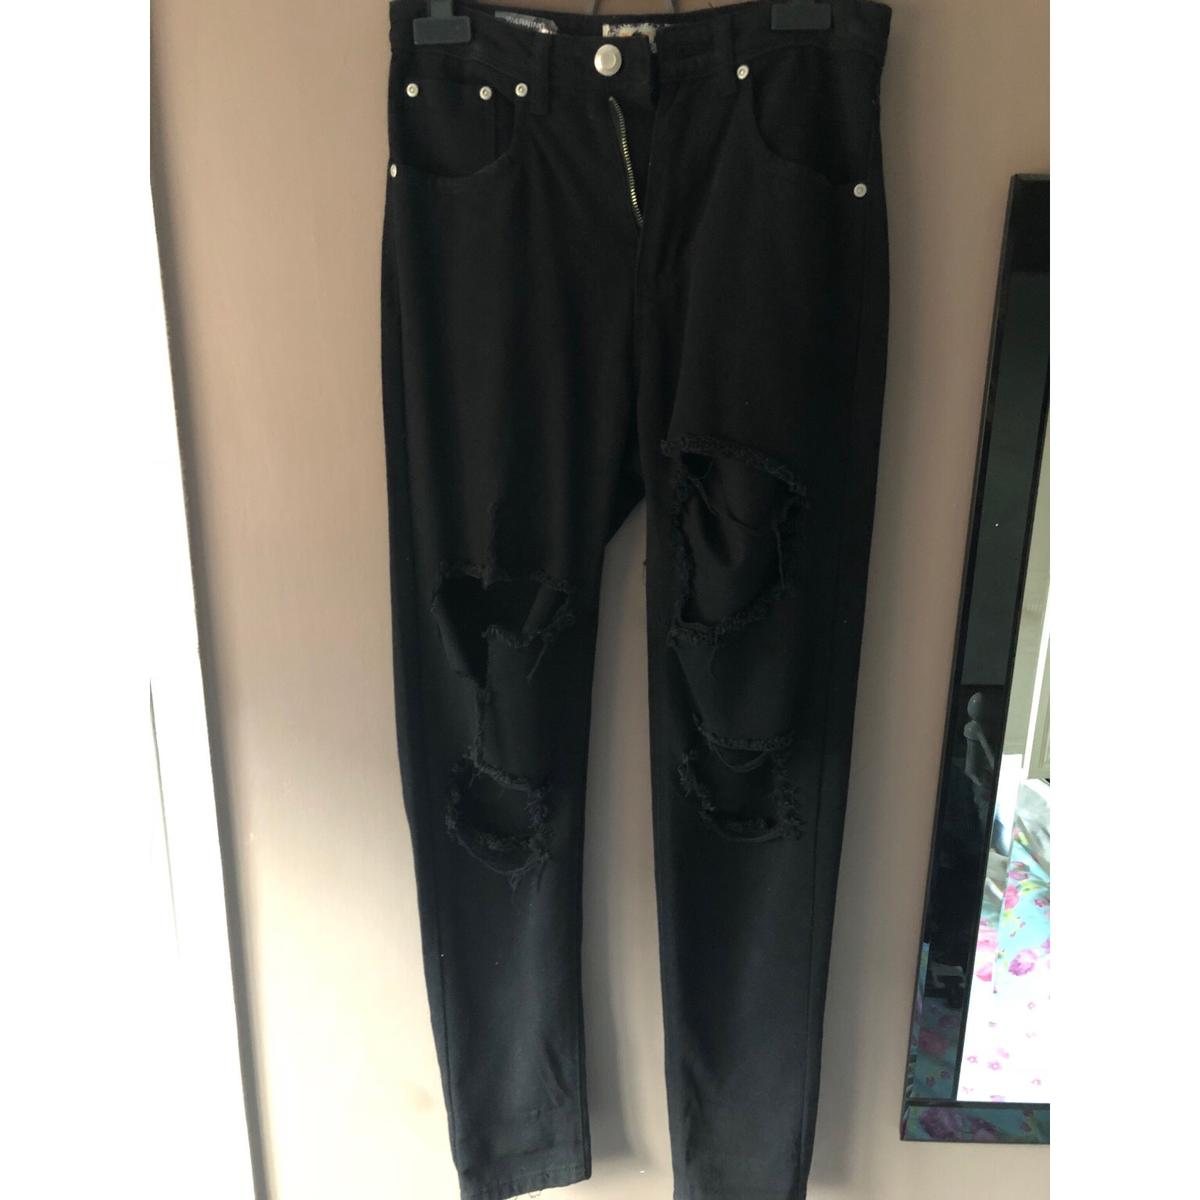 sale usa online united states popular stores Boohoo black ripped jeans